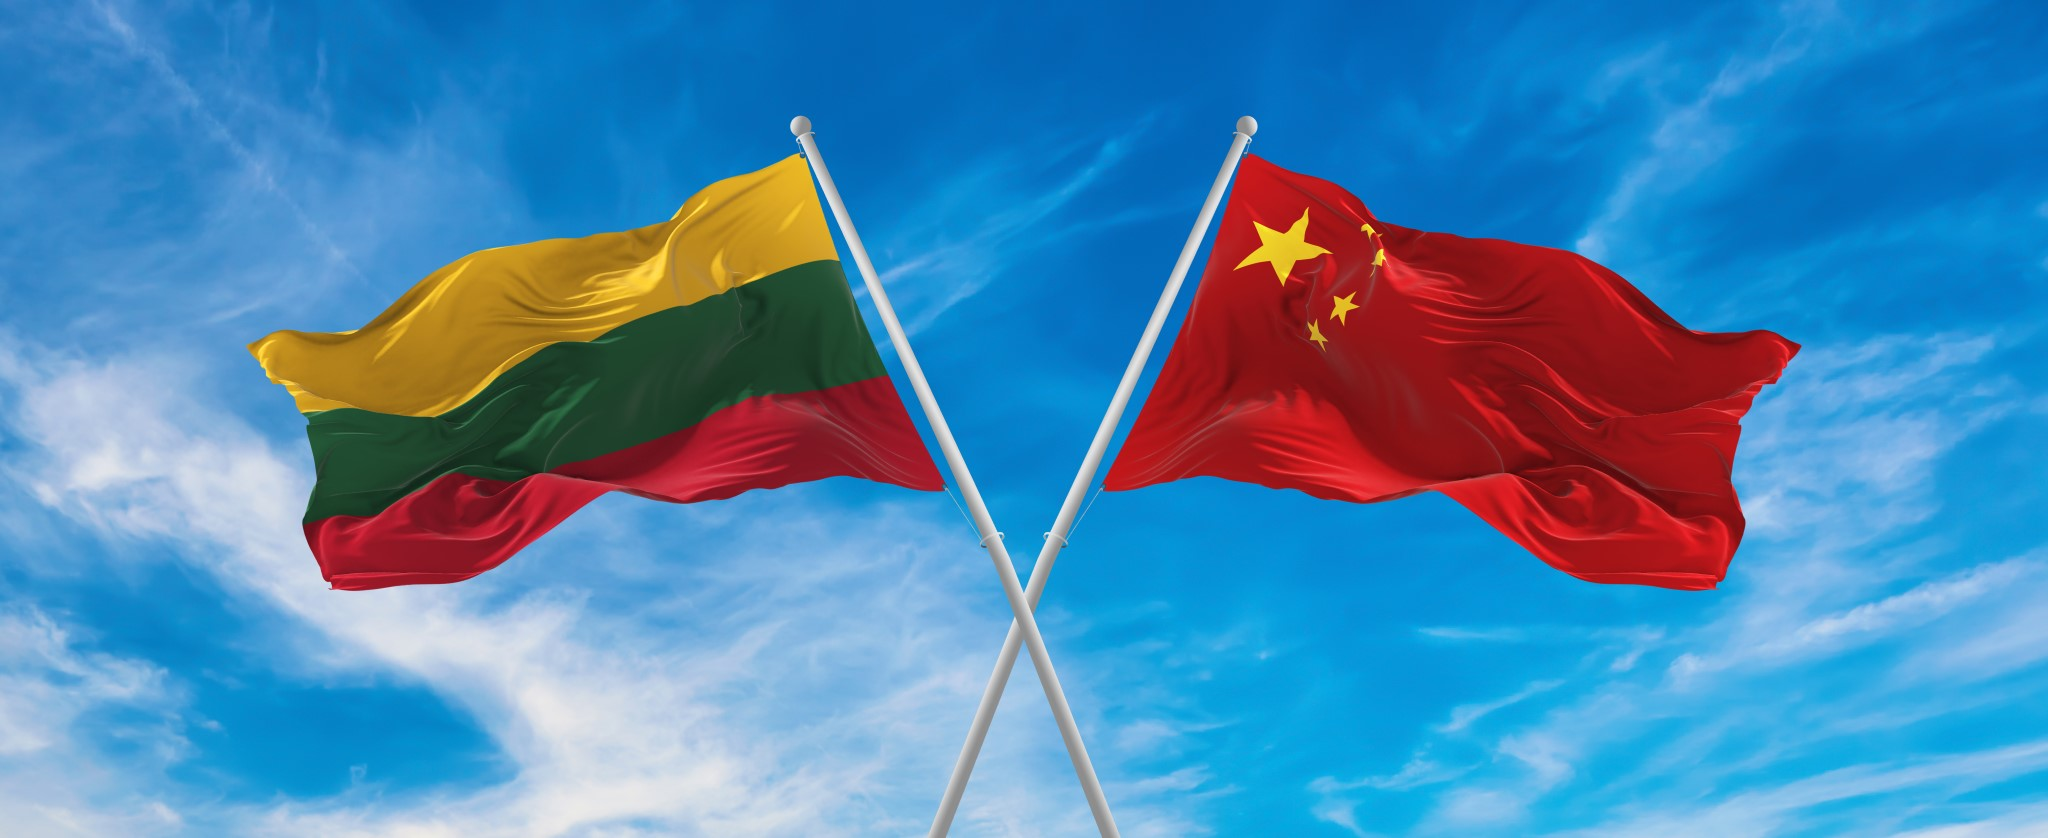 Lithuania's flag and PRC's flag